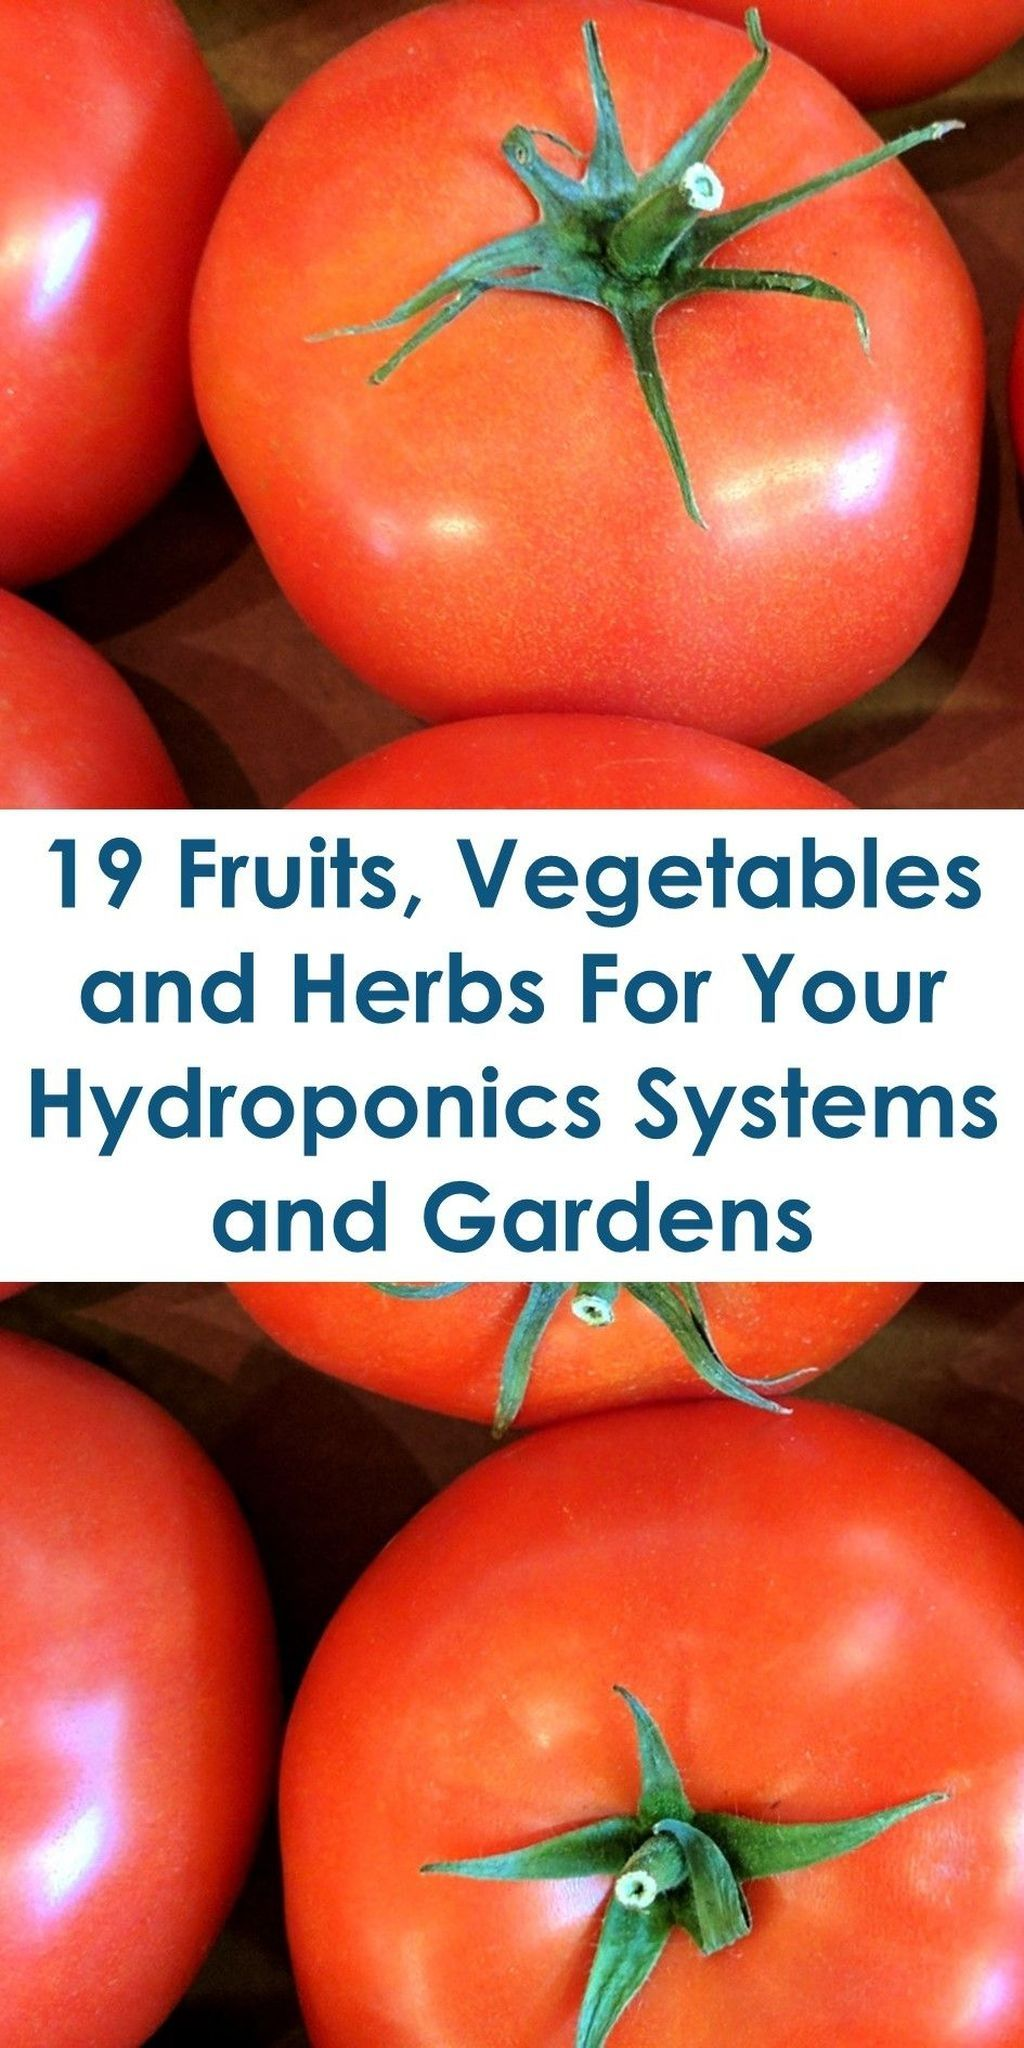 31 Awesome Hydroponic Garden Ideas For Stunning Home To Try is part of Hydroponics system, Hydroponic farming, Hydroponic growing, Hydroponics diy, Hydroponics, Hydroponic gardening - One of the best ways to grow the best vegetables as well as healthy full house plants is by hydroponic …